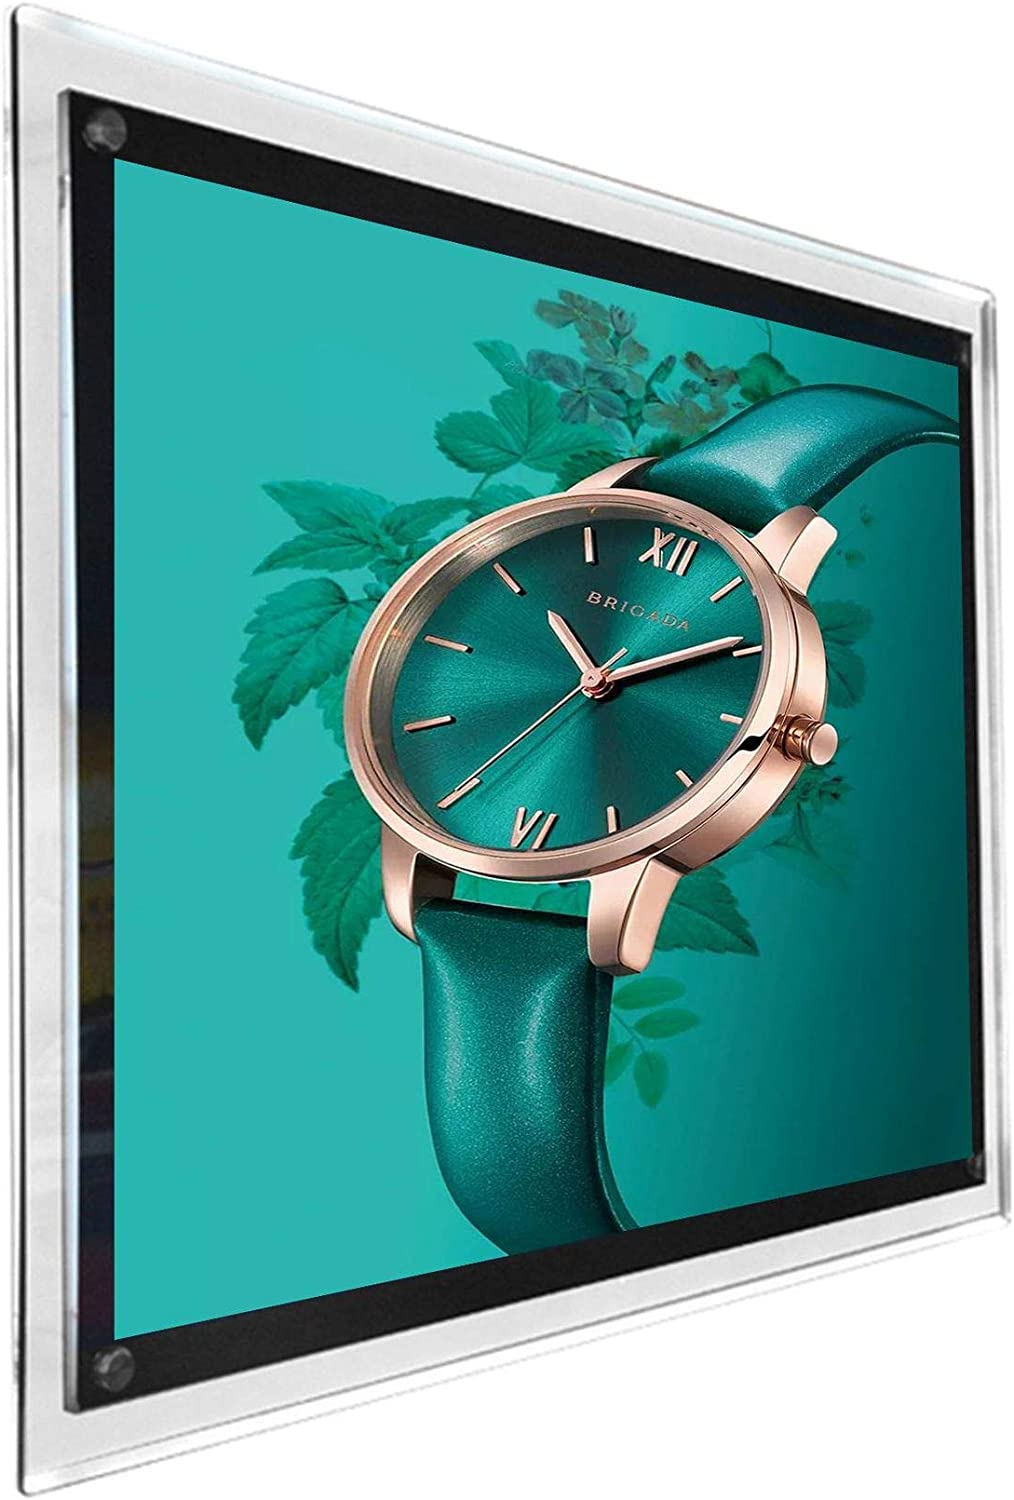 A2 Clip Photo Holders snap Aluminum Poster Frames led Picture Frames Light Boxes Advertising Store Signs Display